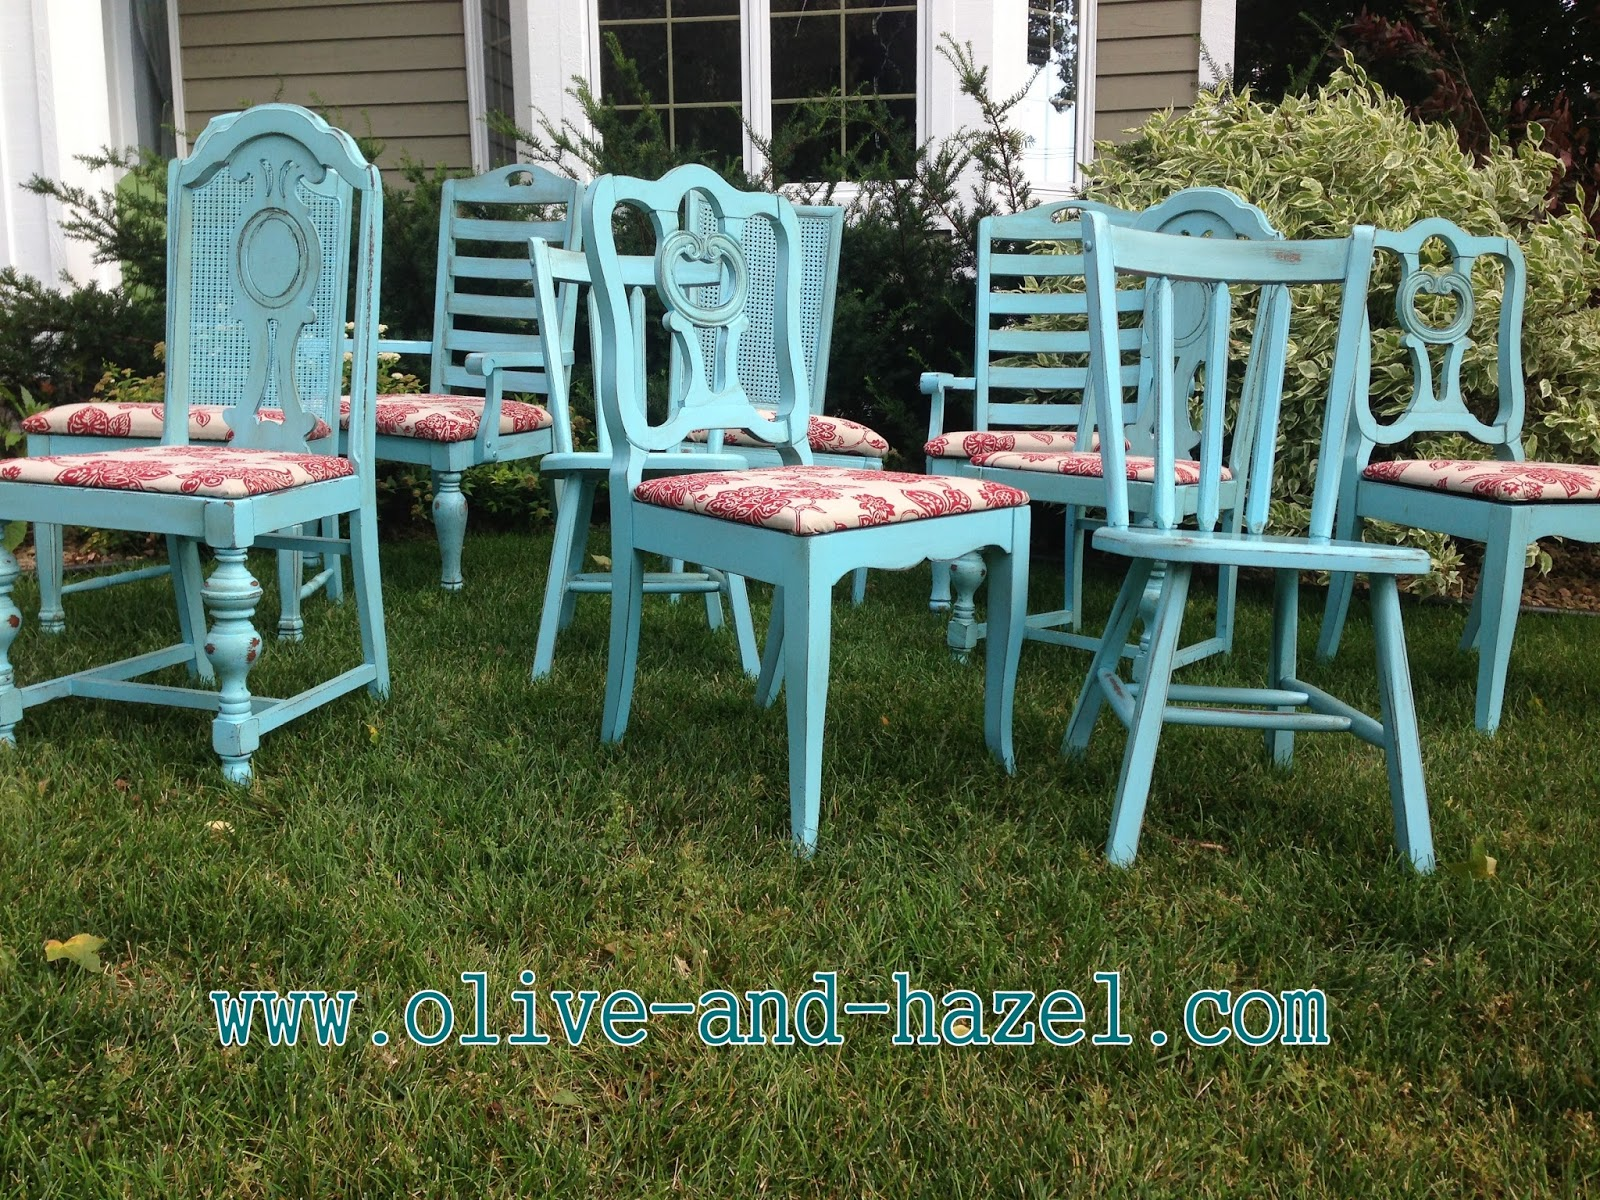 olive + hazel decor co.: custom teal mismatched dining chairs